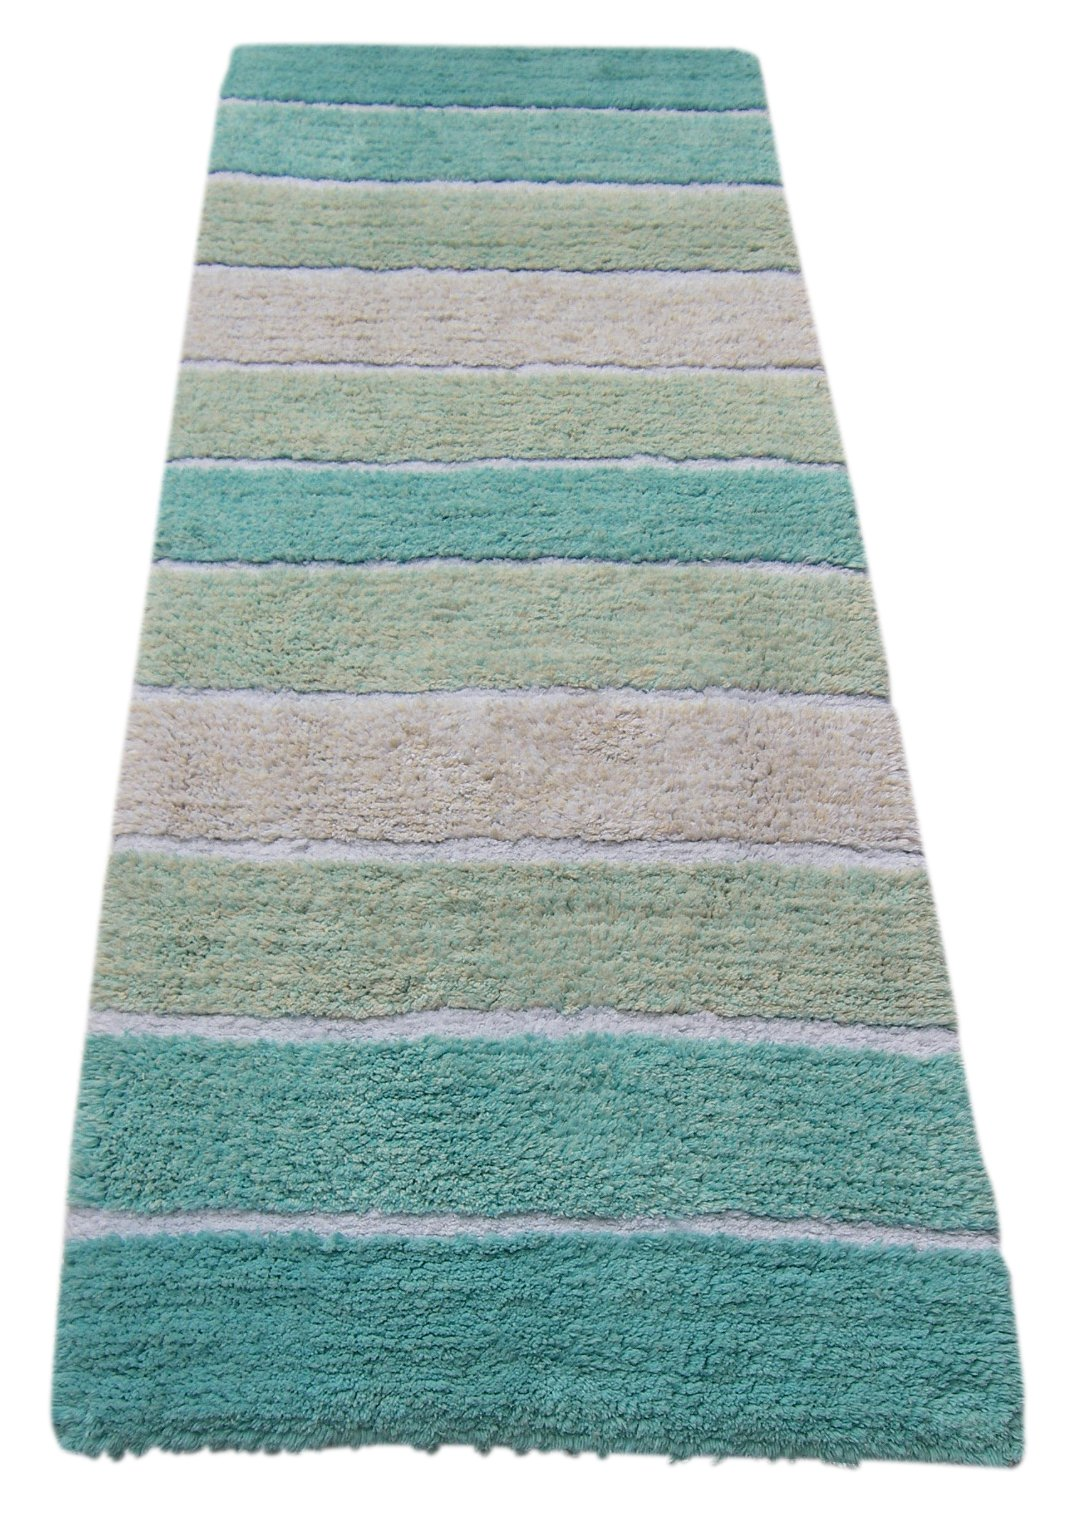 "Chardin Home Cordural Stripe Bath Rug Runner with Skid Resistant Latex Spray Underneath.Turquoise, 24"" W x 60'' L - Super soft mat hand crafted & hand embossed by skilled artisans Large oblong 24 inch x 60 inch plush & soft bath rug to decorate your bathroom Plush & super absorbent cotton pile for long lasting life - bathroom-linens, bathroom, bath-mats - 81w4hr0%2Bz3L -"